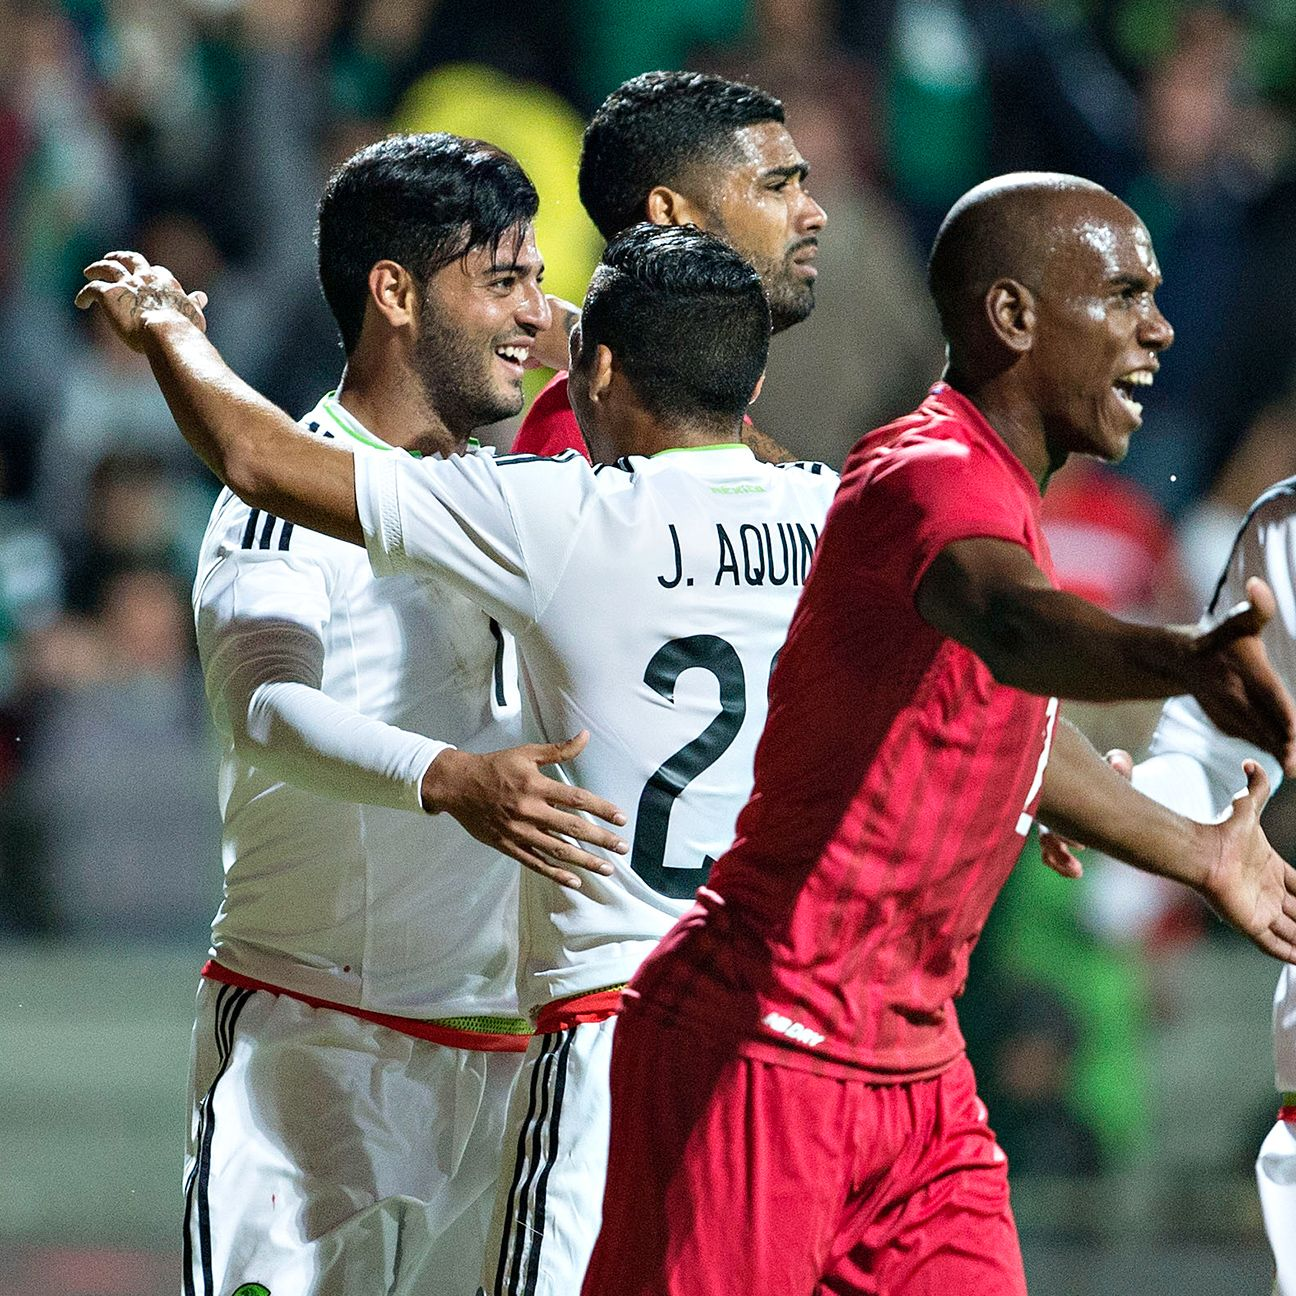 After not appearing in Saturday's win over the U.S., Carlos Vela scored the lone goal in Mexico's victory.